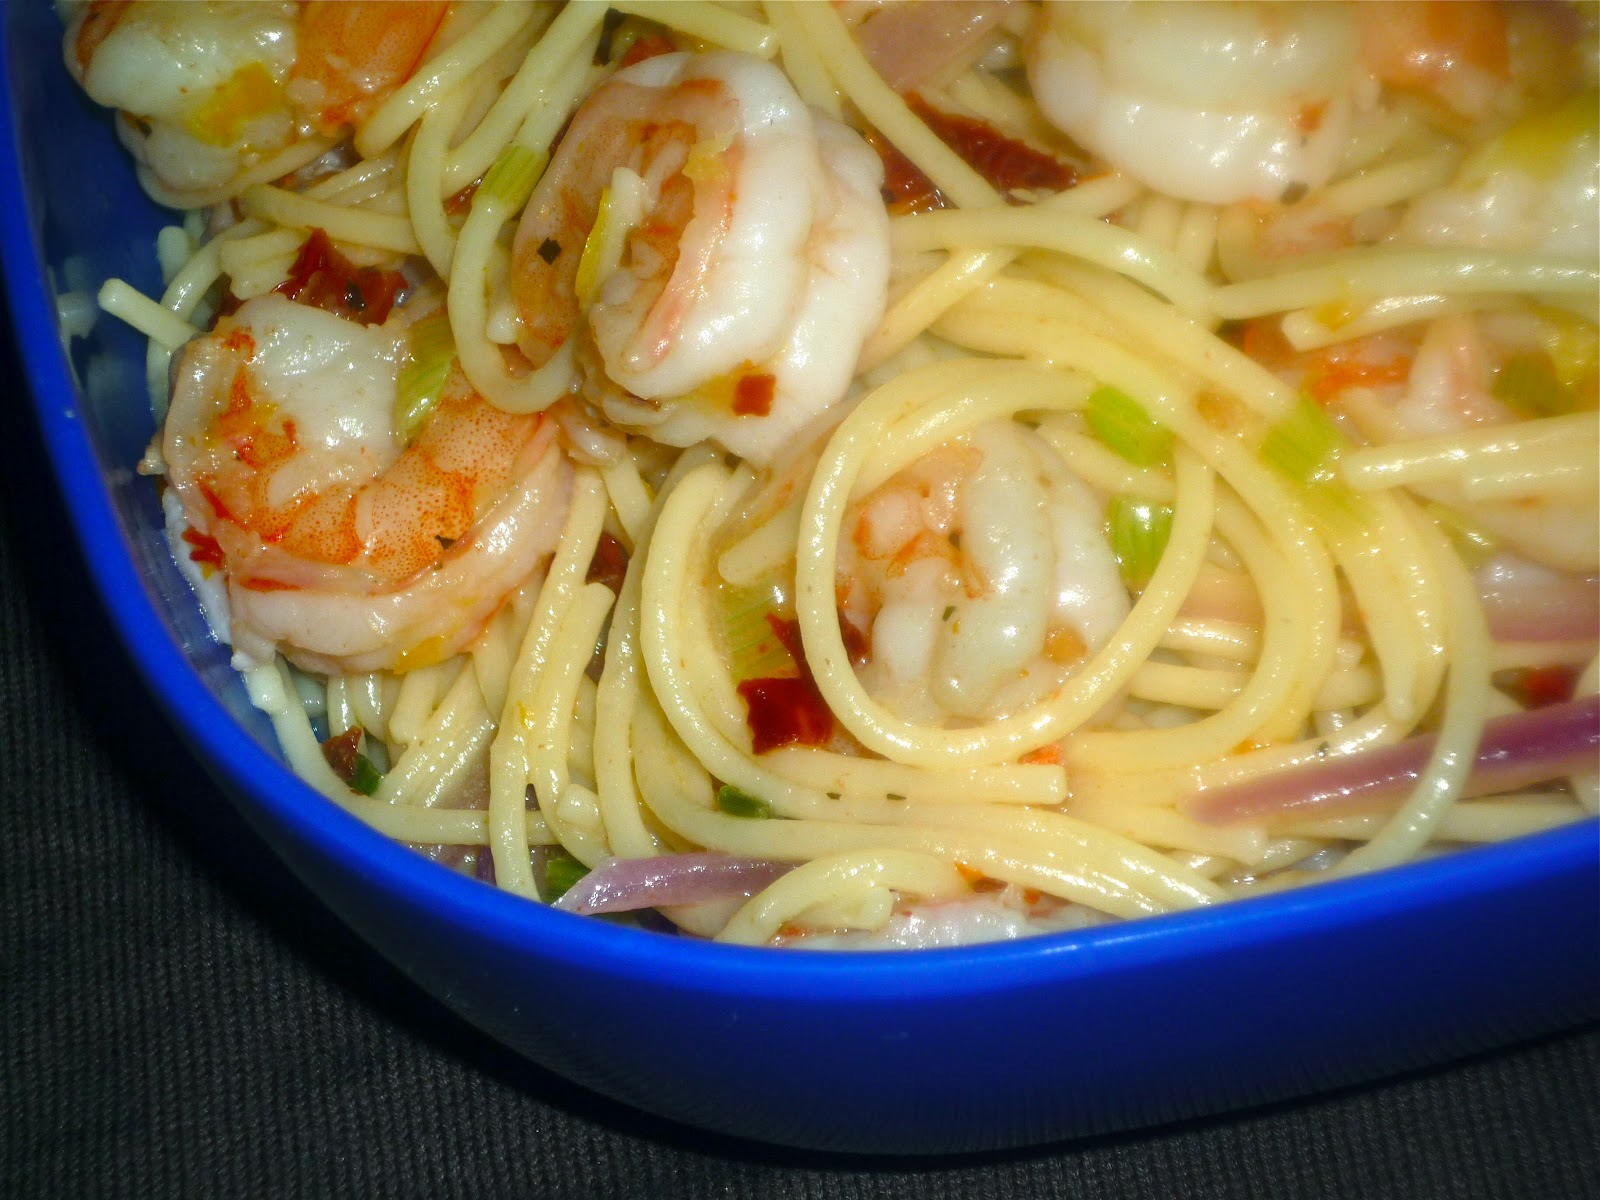 Back To School SundaySupperFeaturing Speedy Spicy Shrimp Pasta